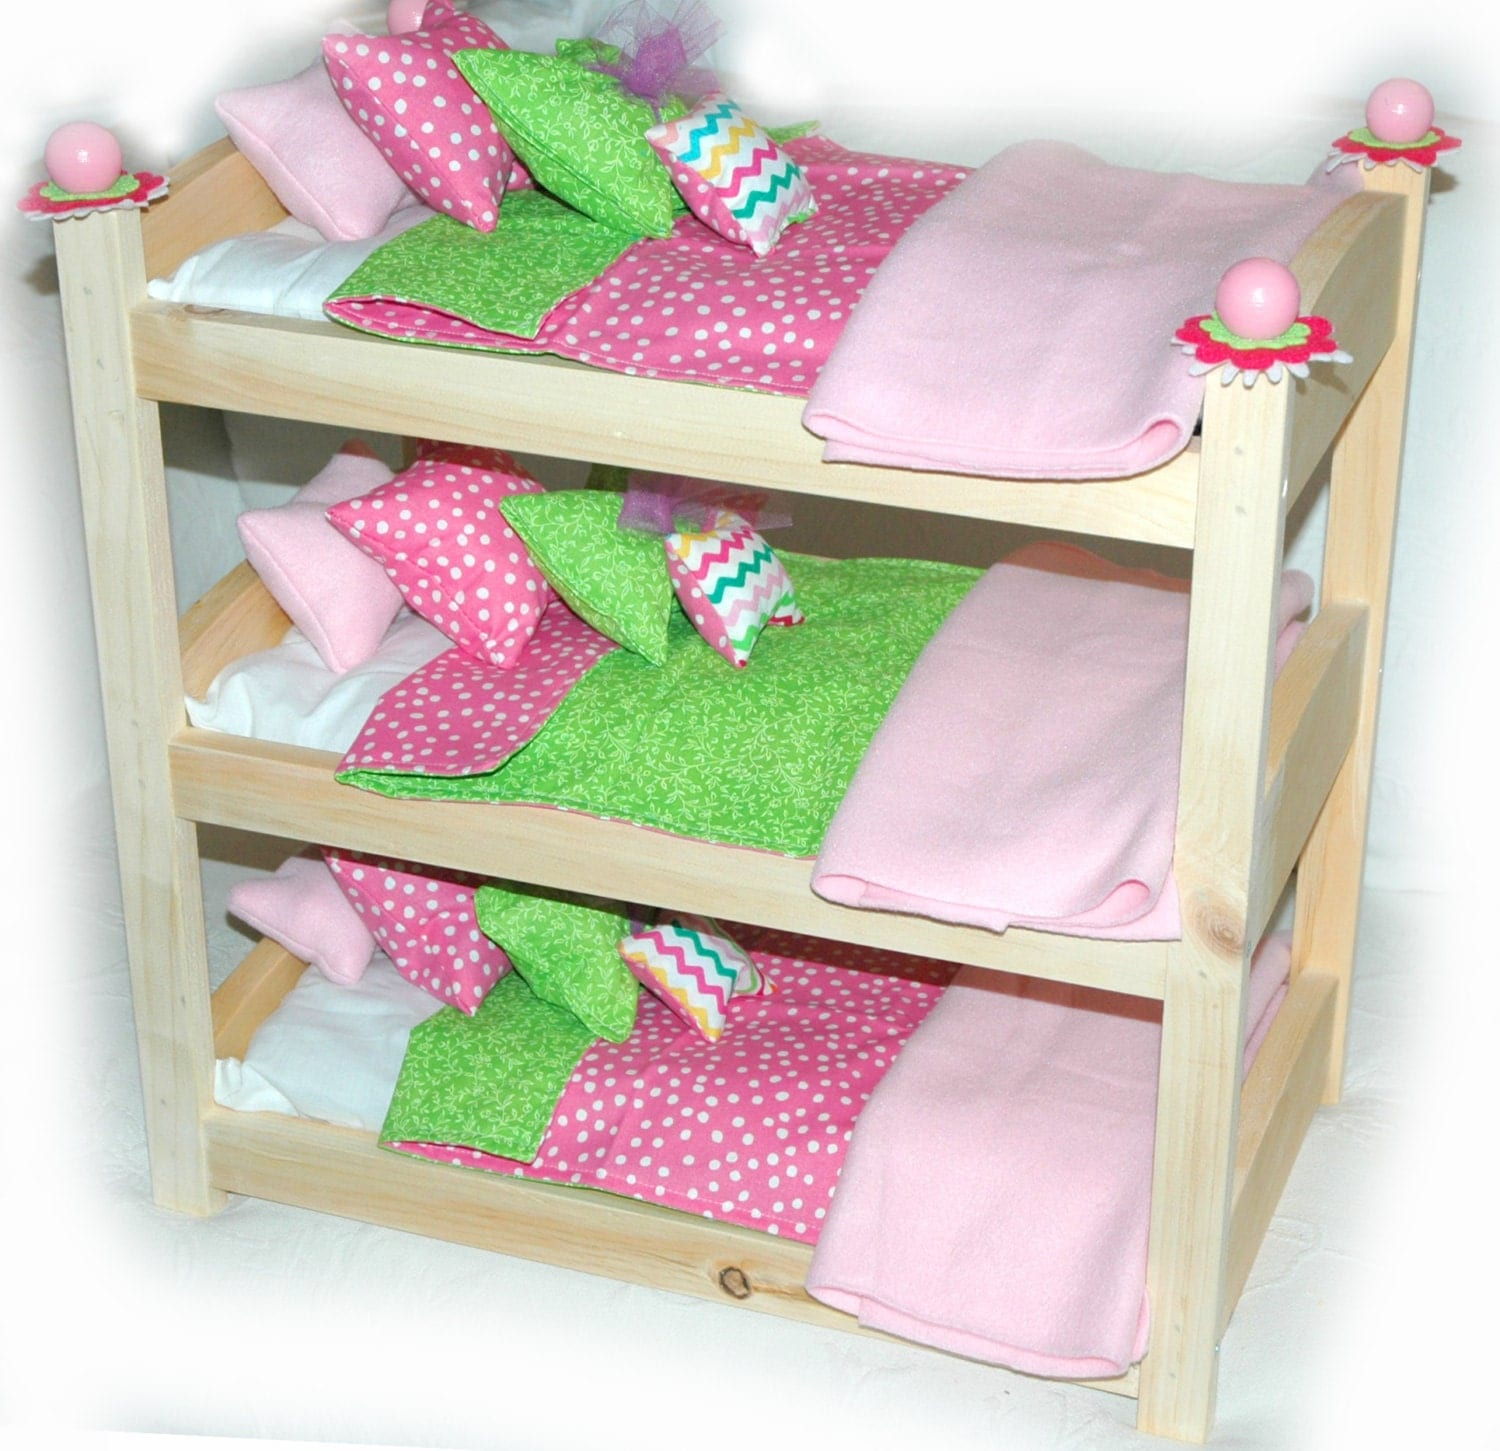 Bunk Bed Dolls: Triple Doll Bunk Bed Cotton Candy American Made Girl Doll